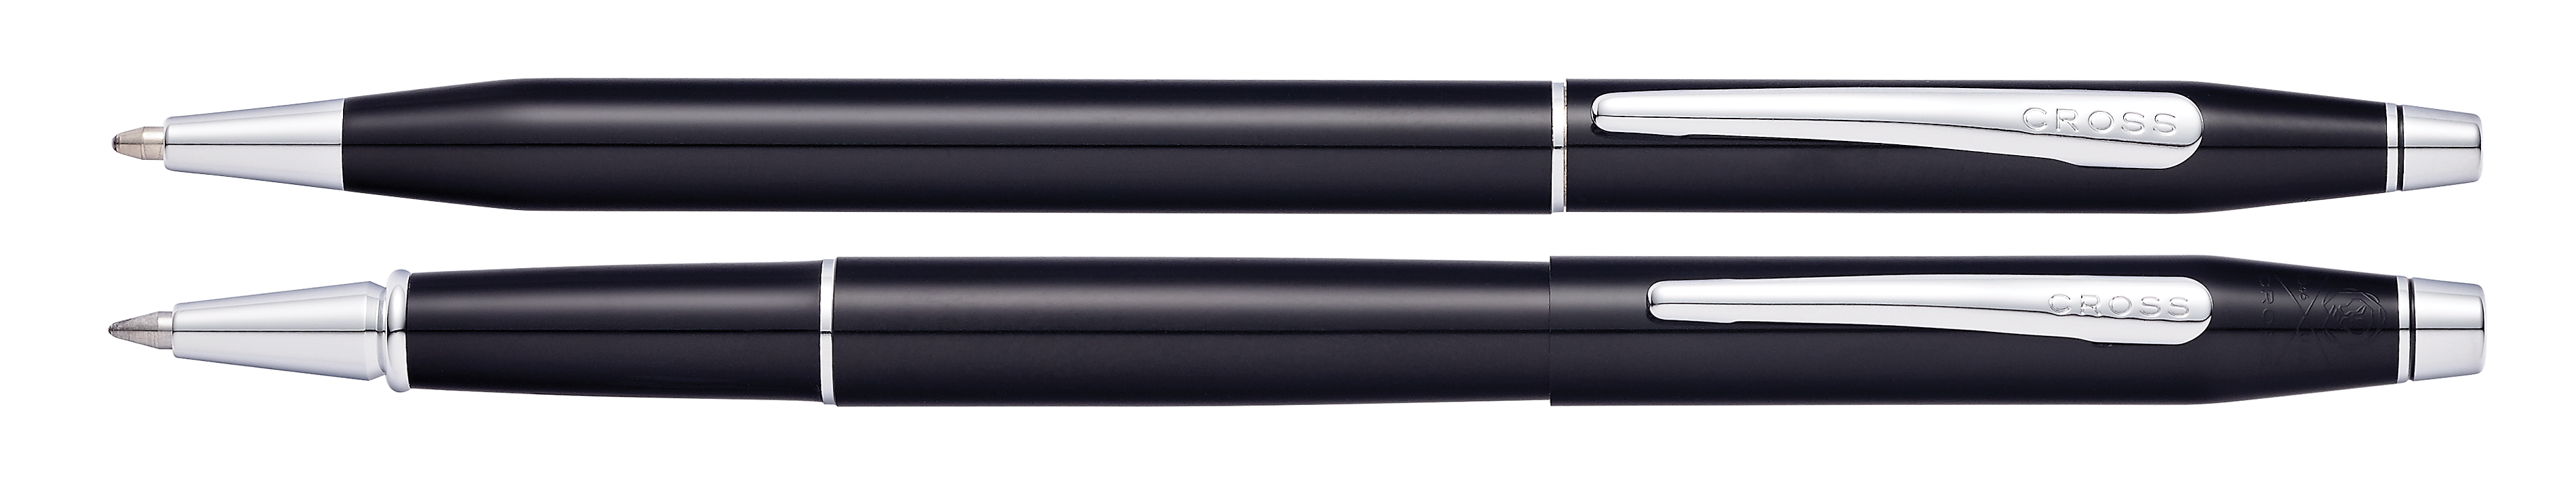 Classic Century Black Lacquer Ballpoint and Rollerball Gift Set